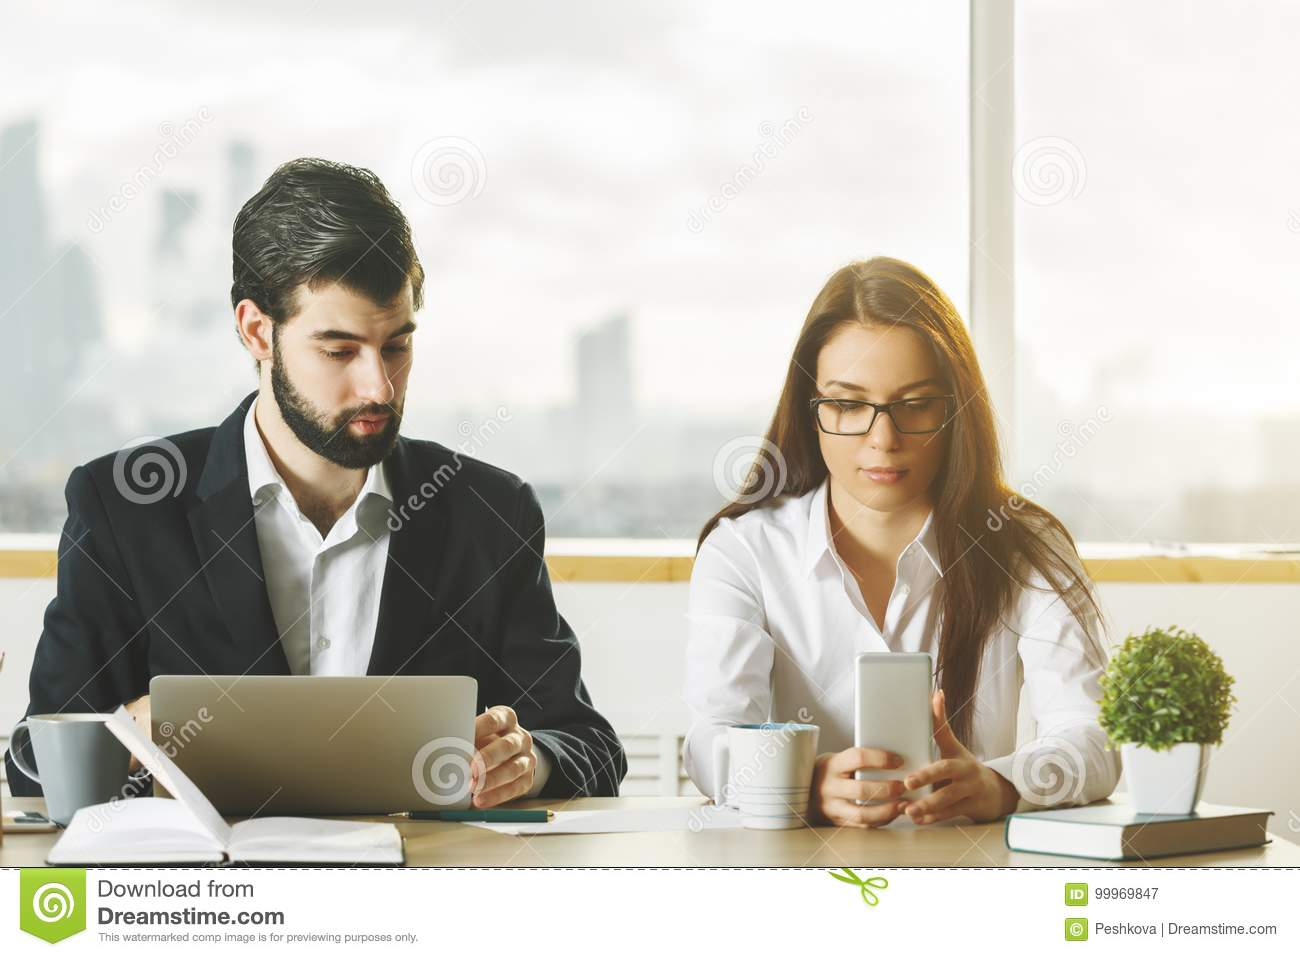 Young businessman and woman using phone